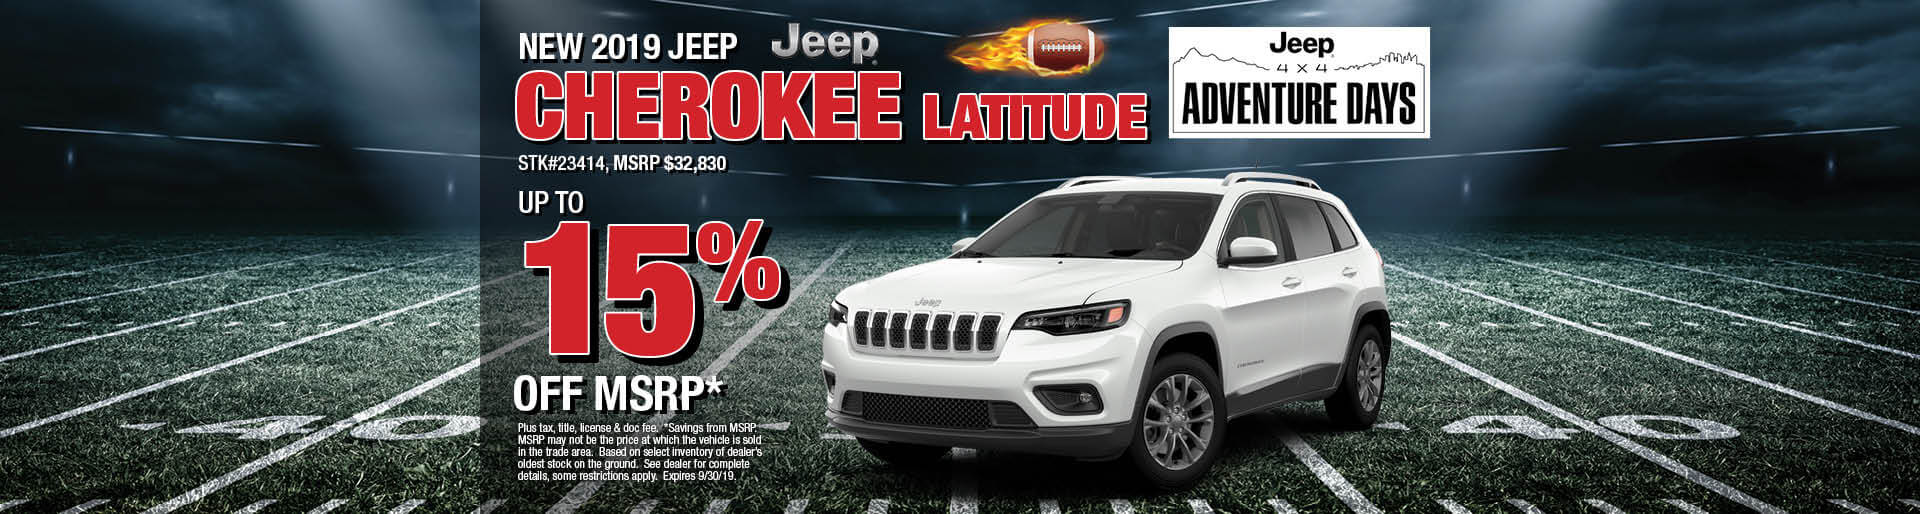 Get up to 15% off MSRP on a 2019 Jeep Cherokee Latitude